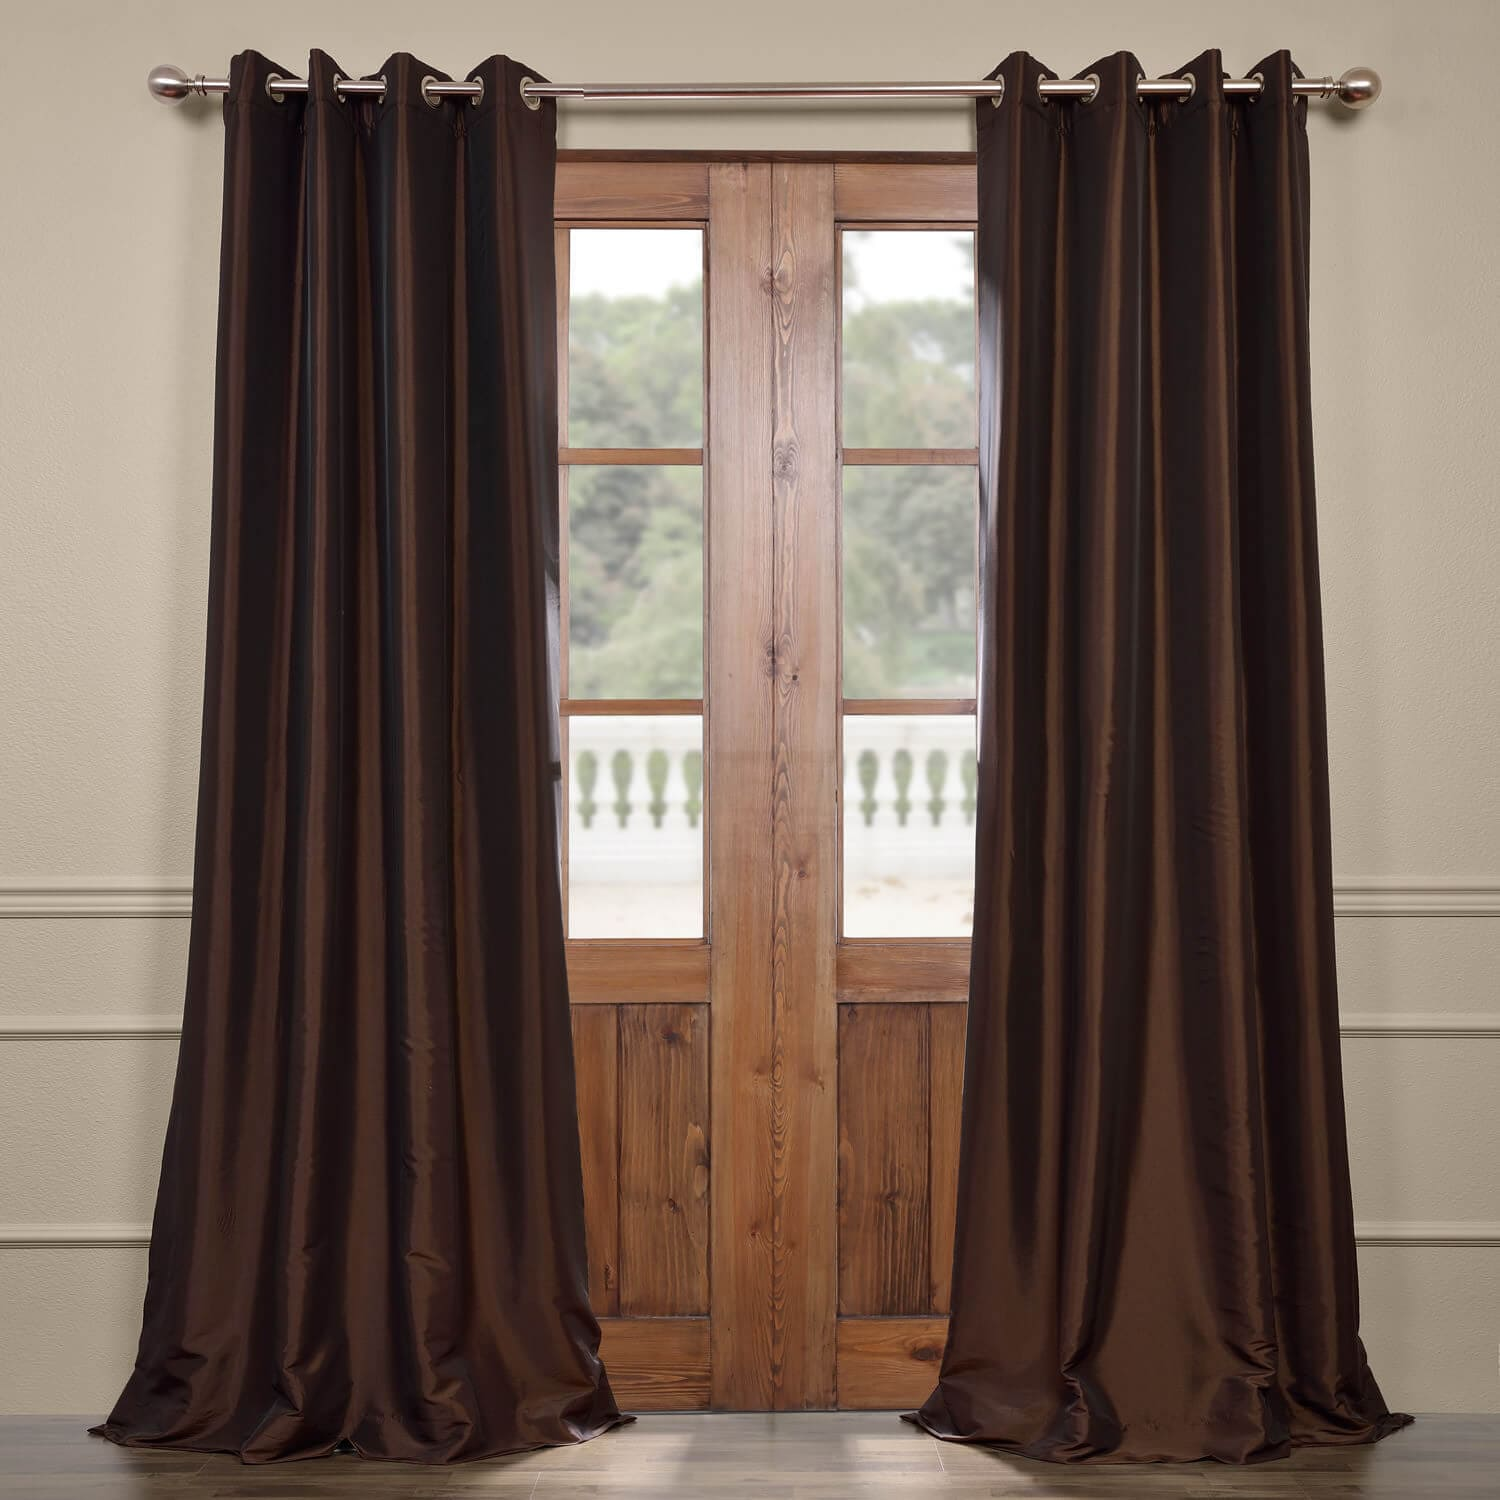 Curtain Deals Java Grommet Blackout Faux Silk Taffeta Curtain Deals Read